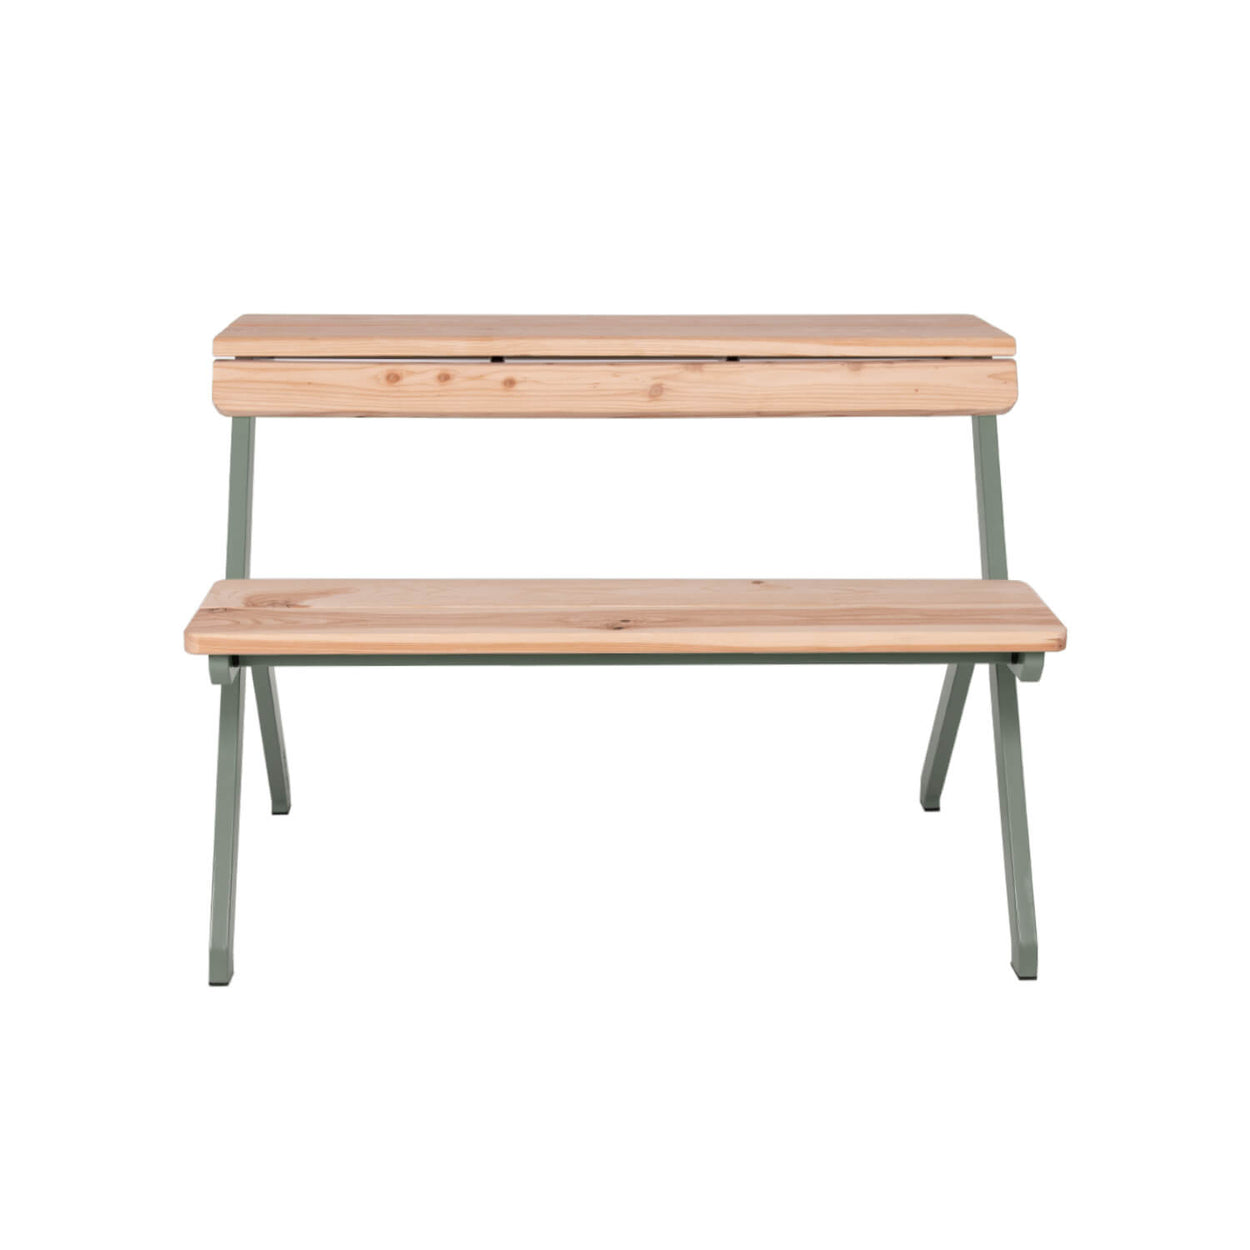 Tablebench